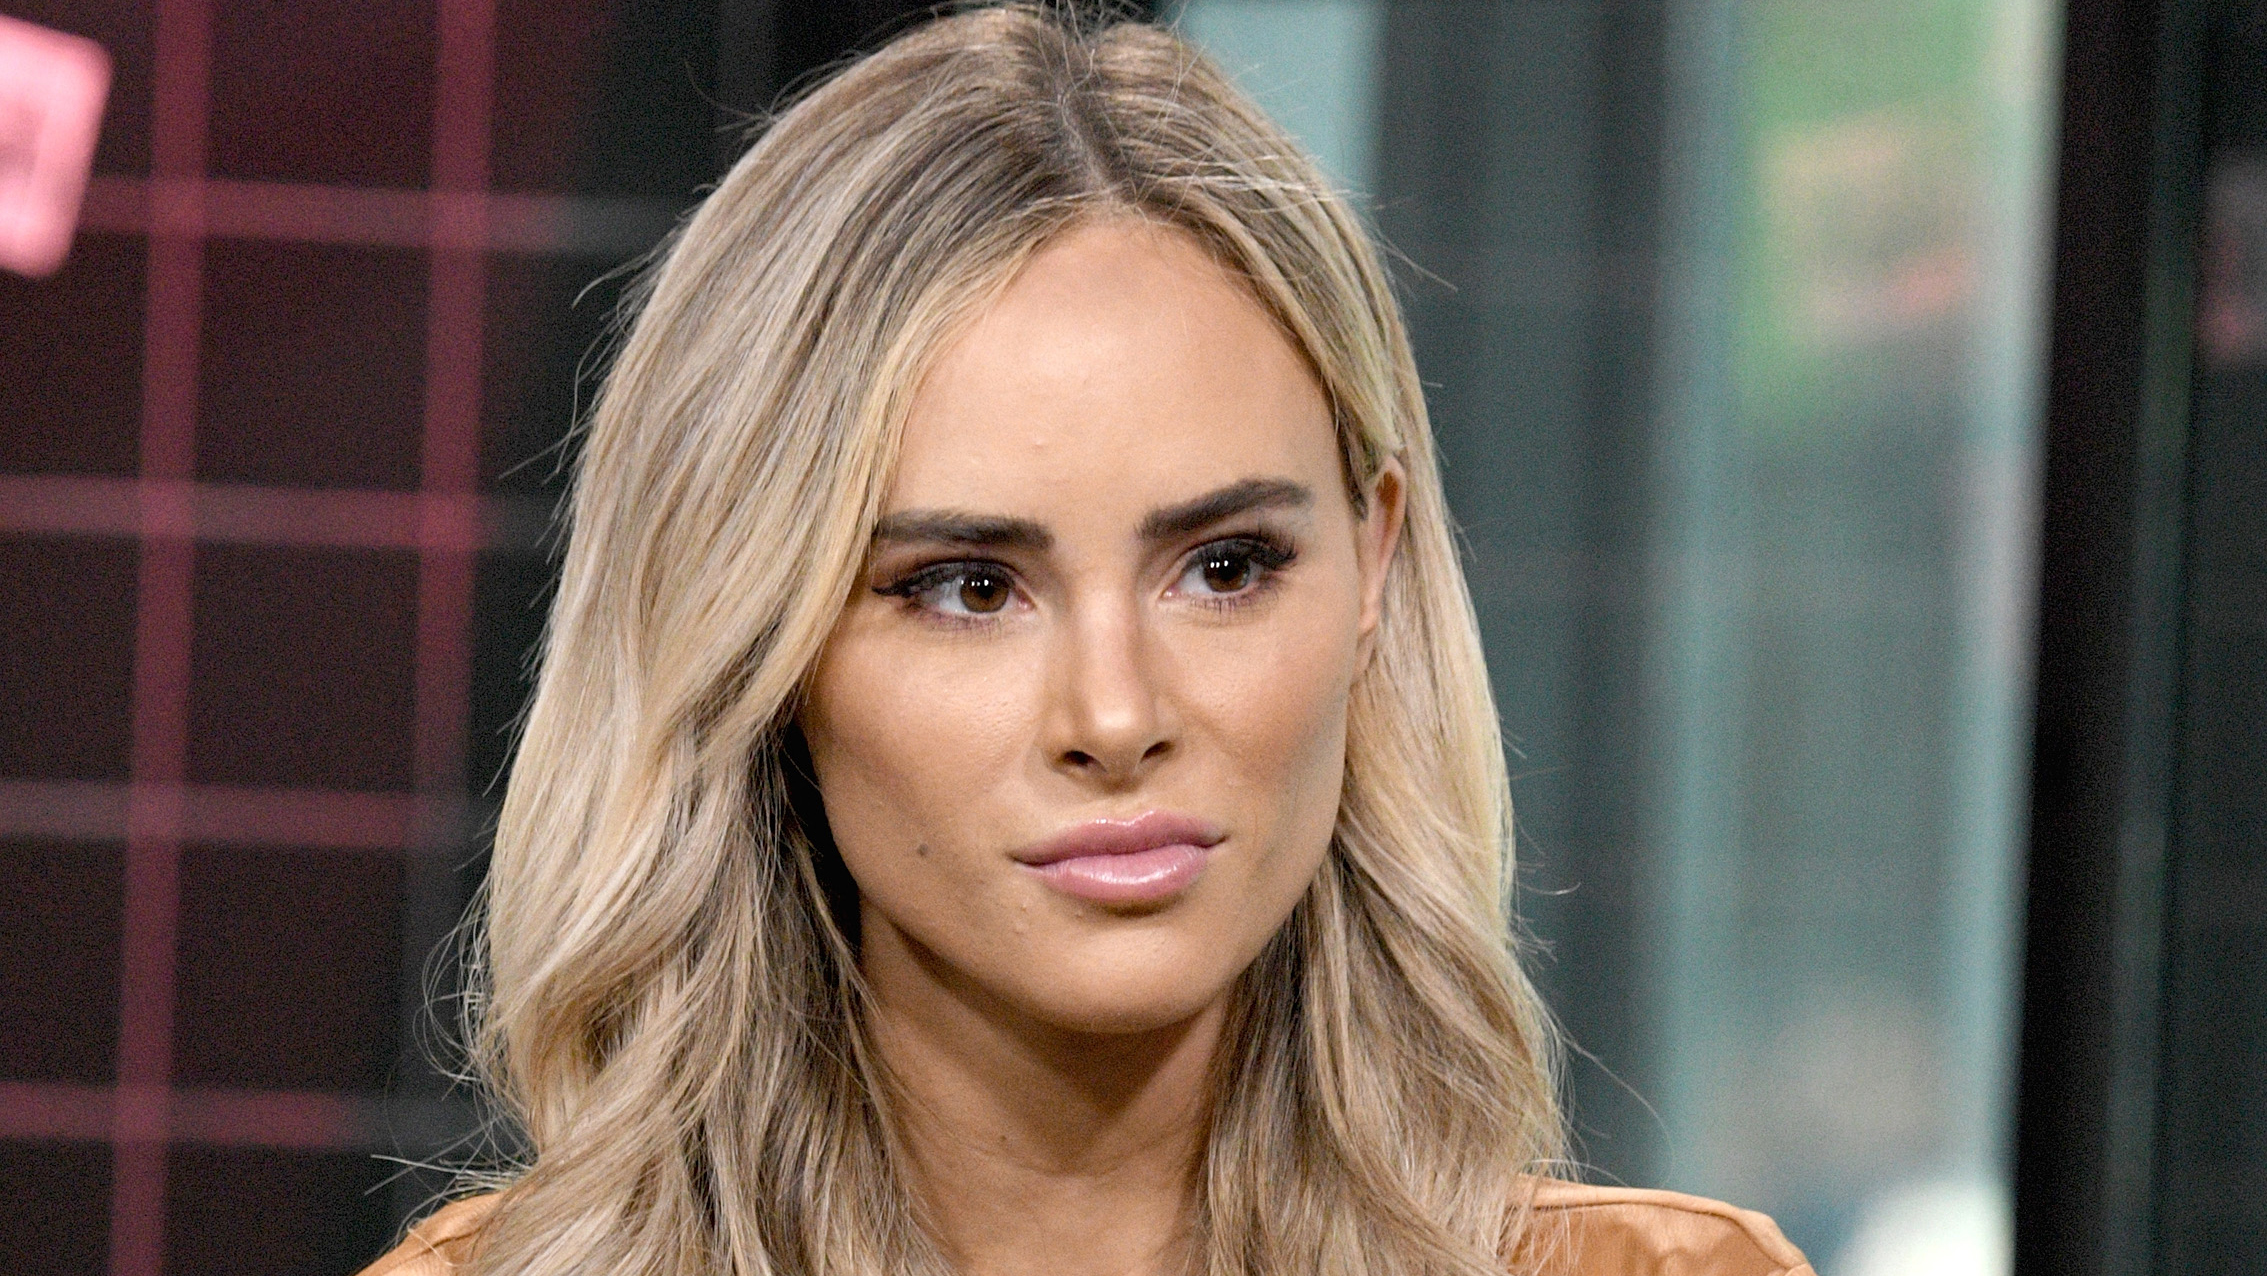 Amanda Stanton of 'Bachelor' defends driving from California to Arizona to get her hair done